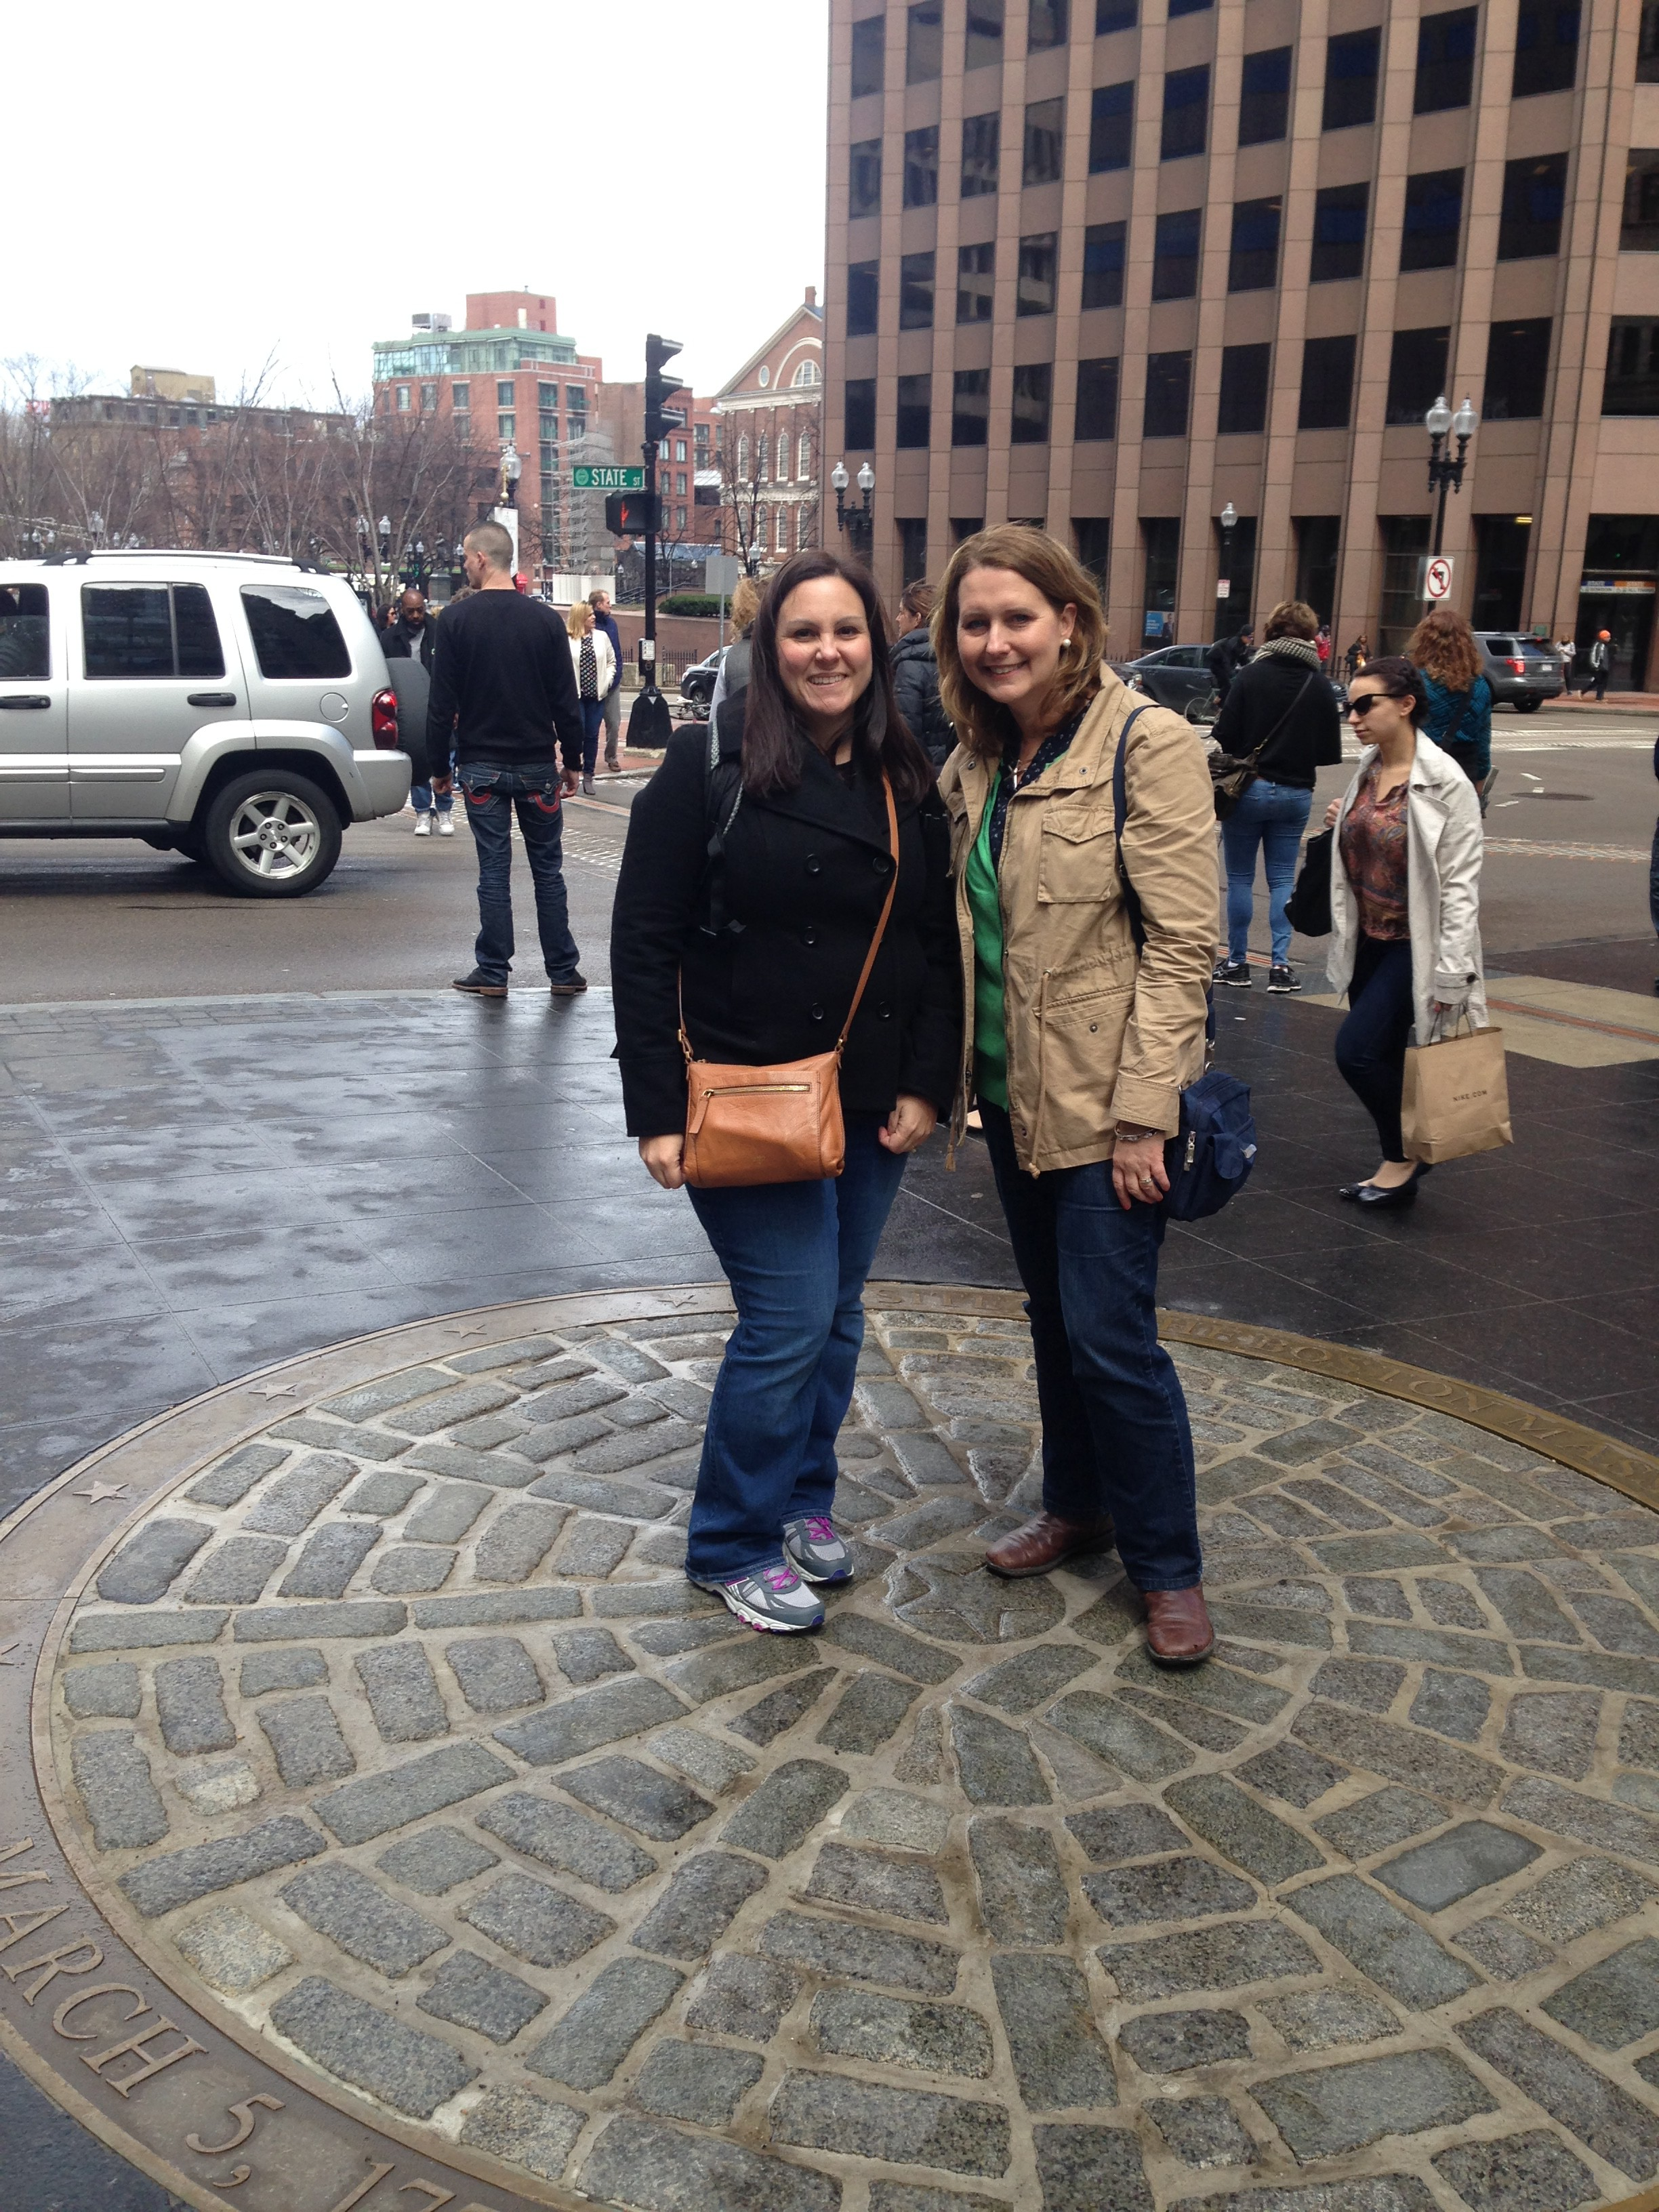 On the site of the Boston Massacre